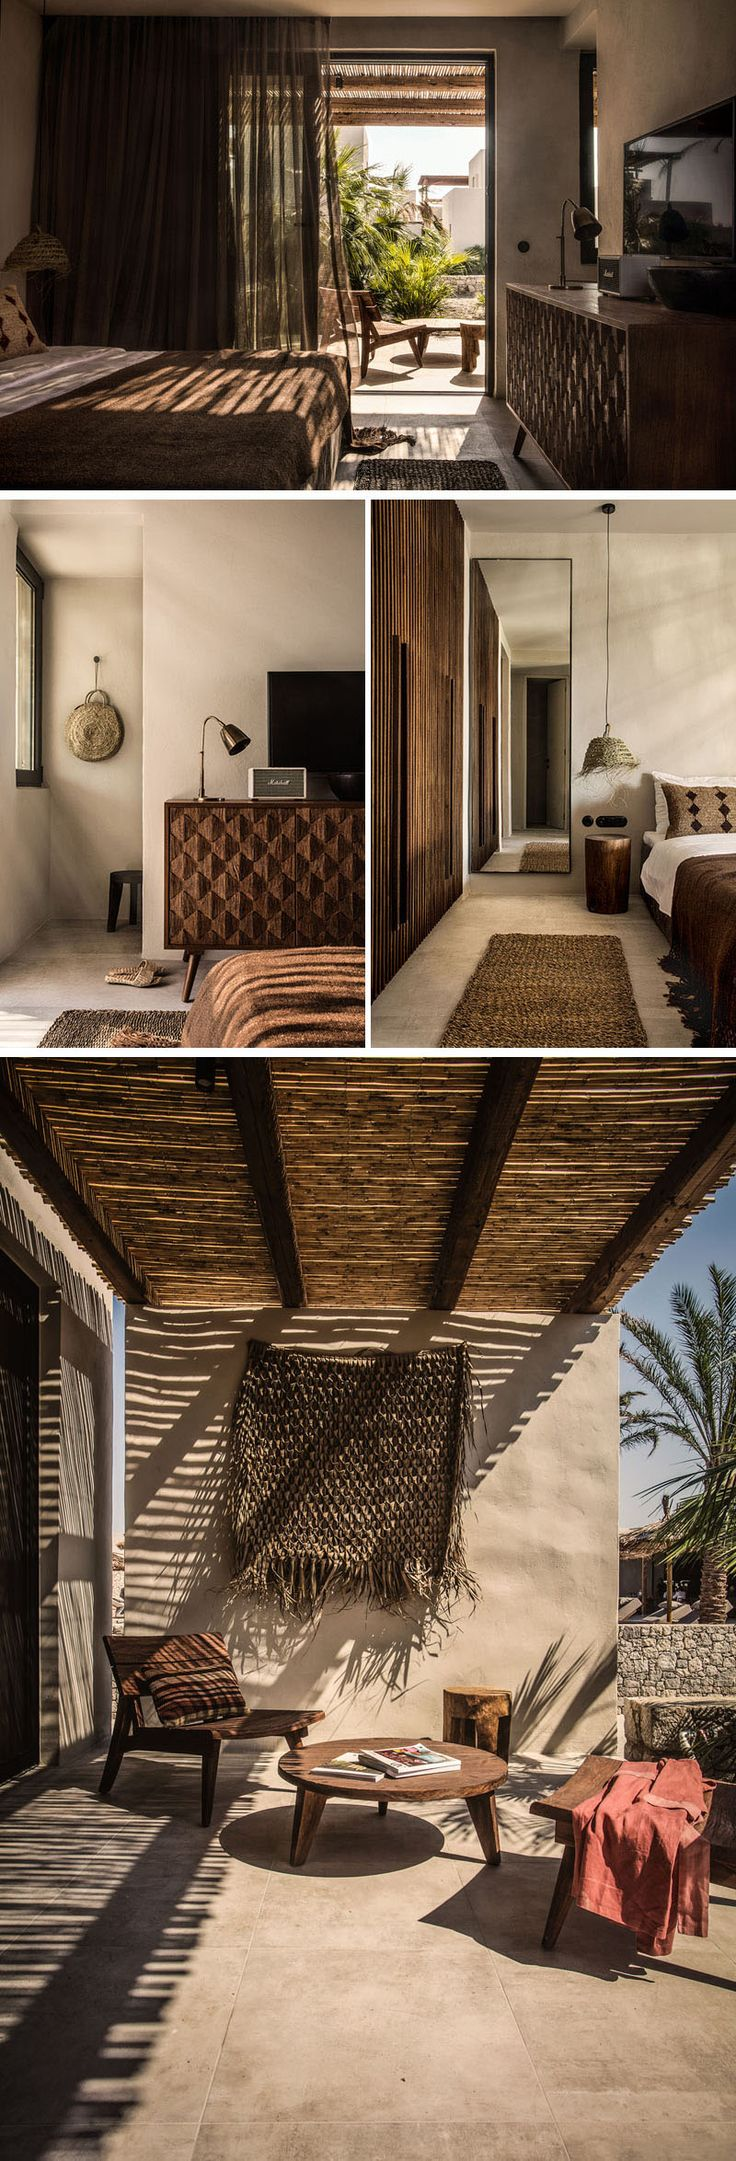 Each room and villa throughout this contemporary Greece hotel have access to a private veranda or terrace. #HotelRoom #Hotel #Greece #InteriorDesign